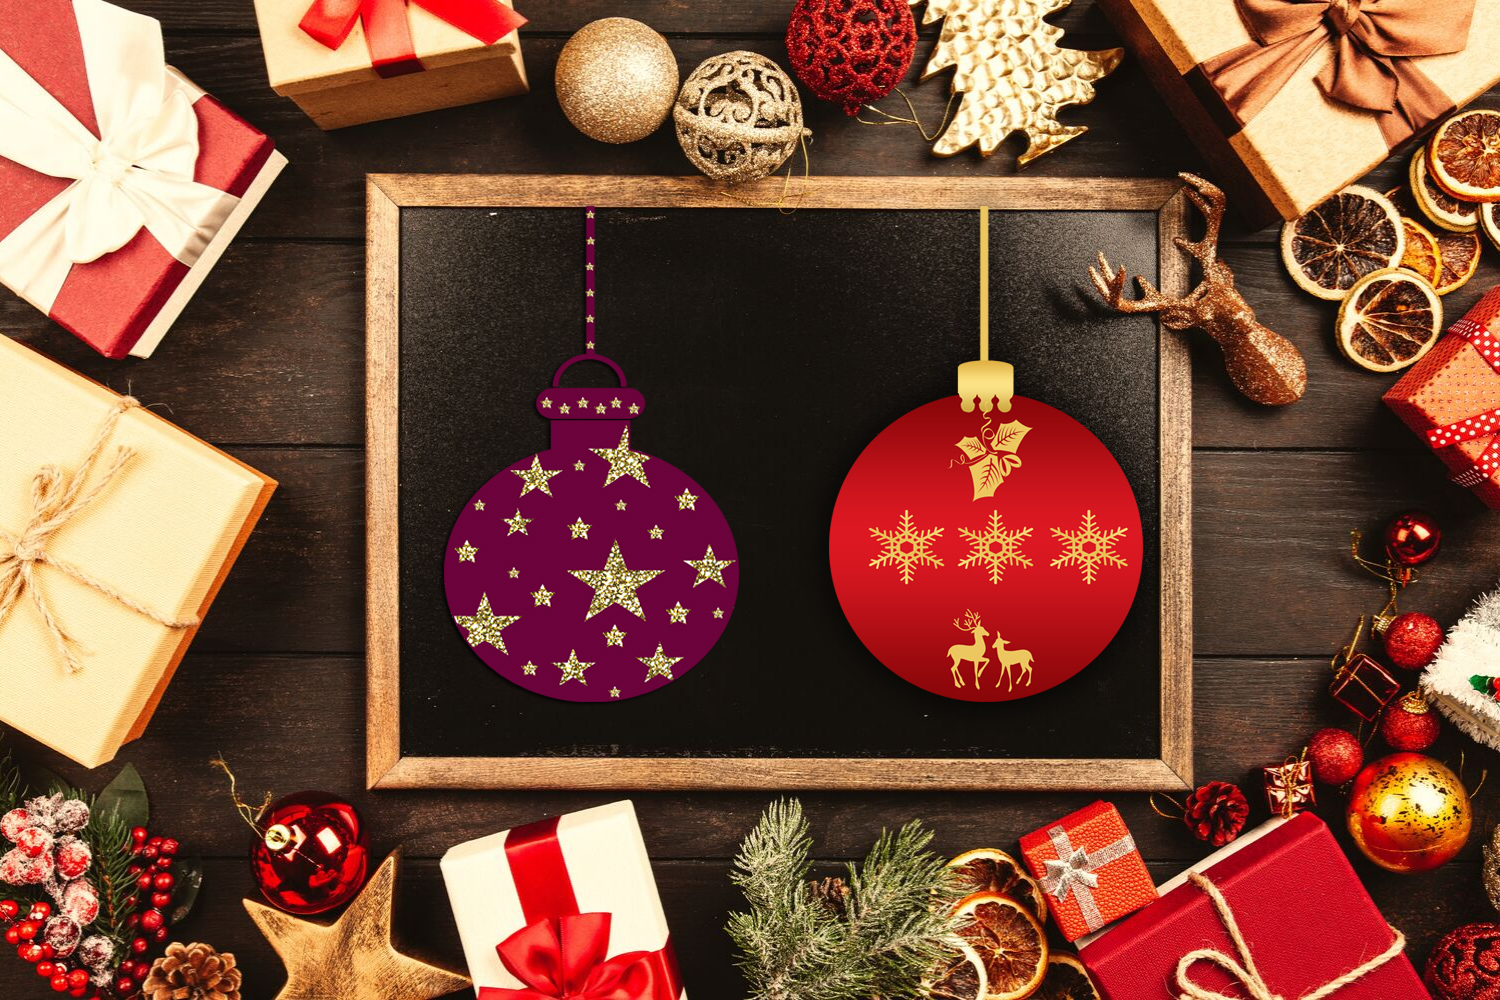 Cute Christmas Clipart- Cute Holiday Graphics Clipart example image 4